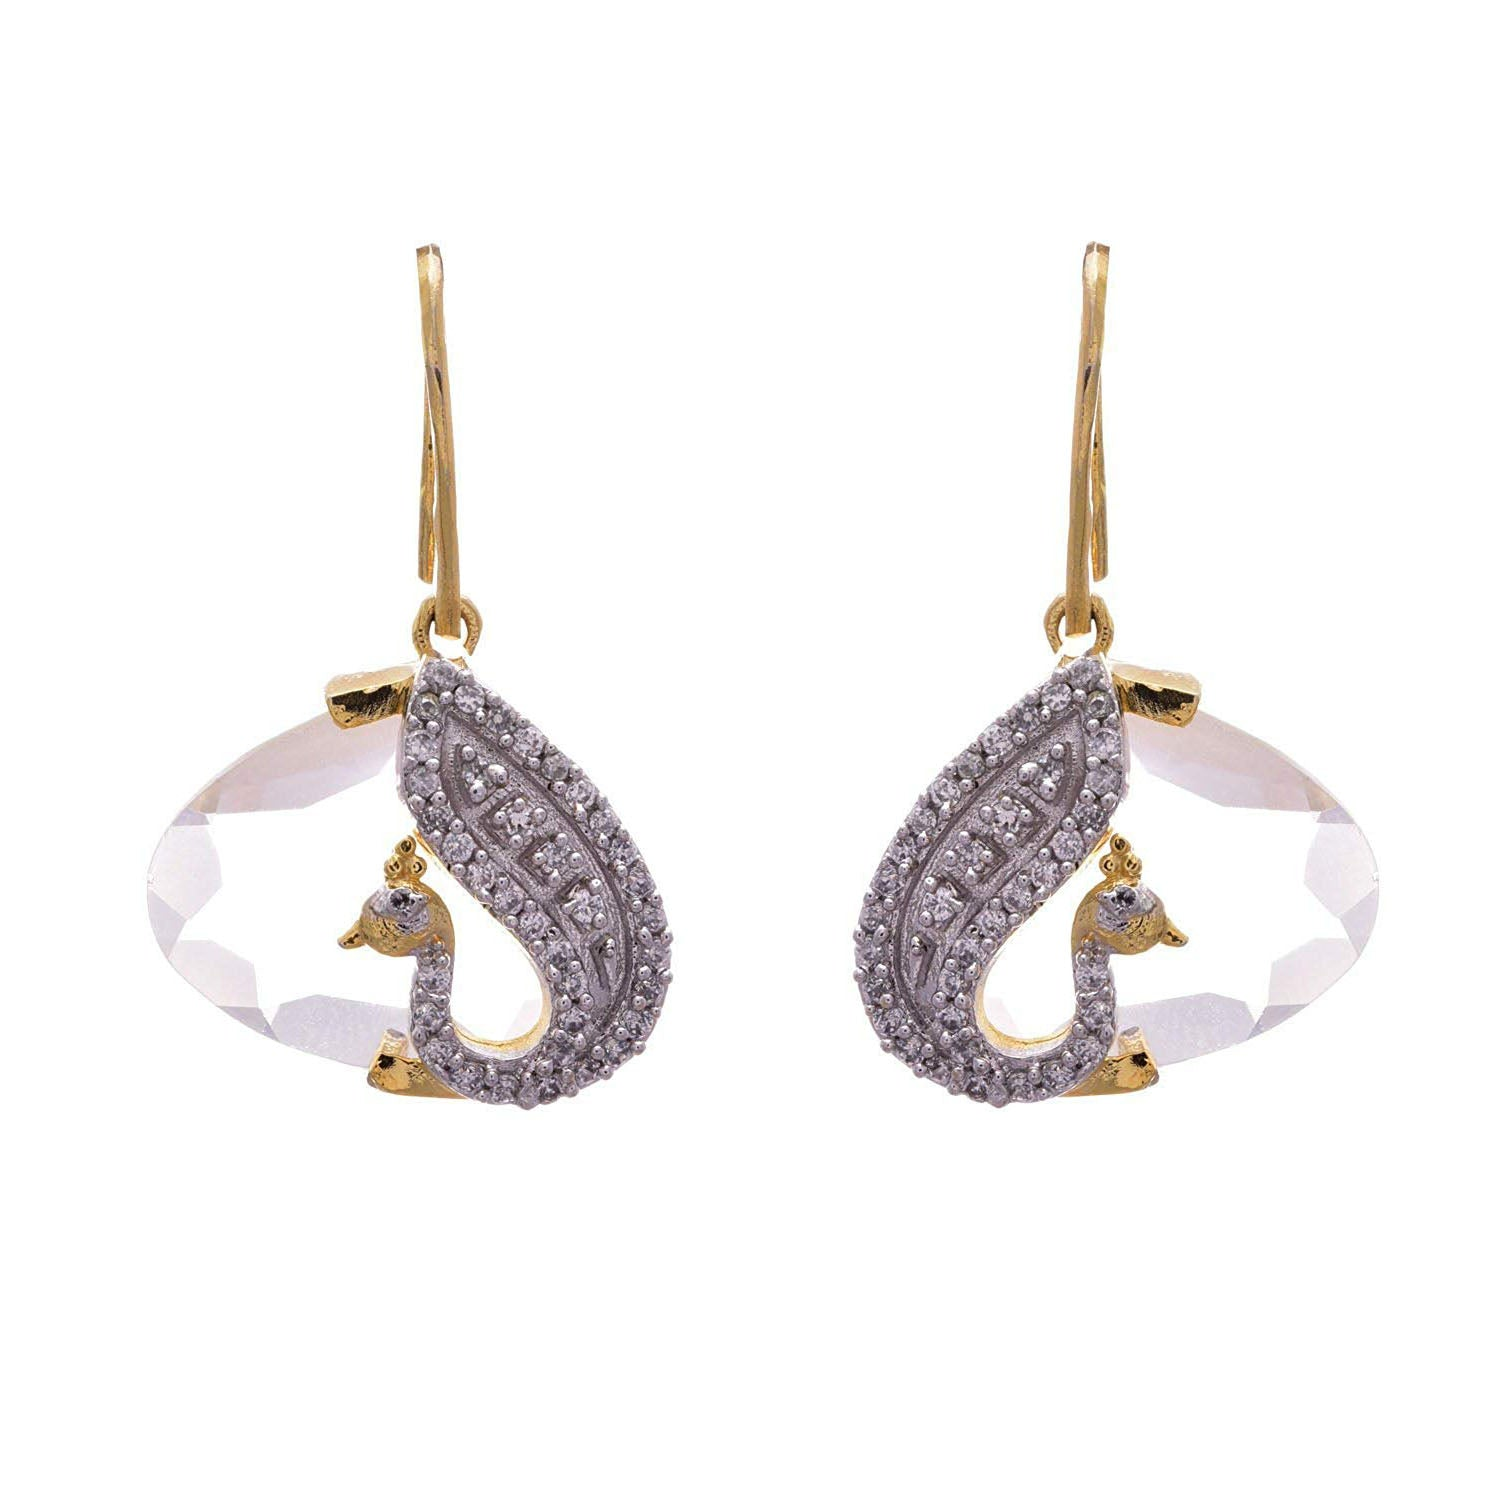 Traditional Ethnic One Gram Gold Plated Peacock Cz American Diamond Designer Earring for Women and Girls.